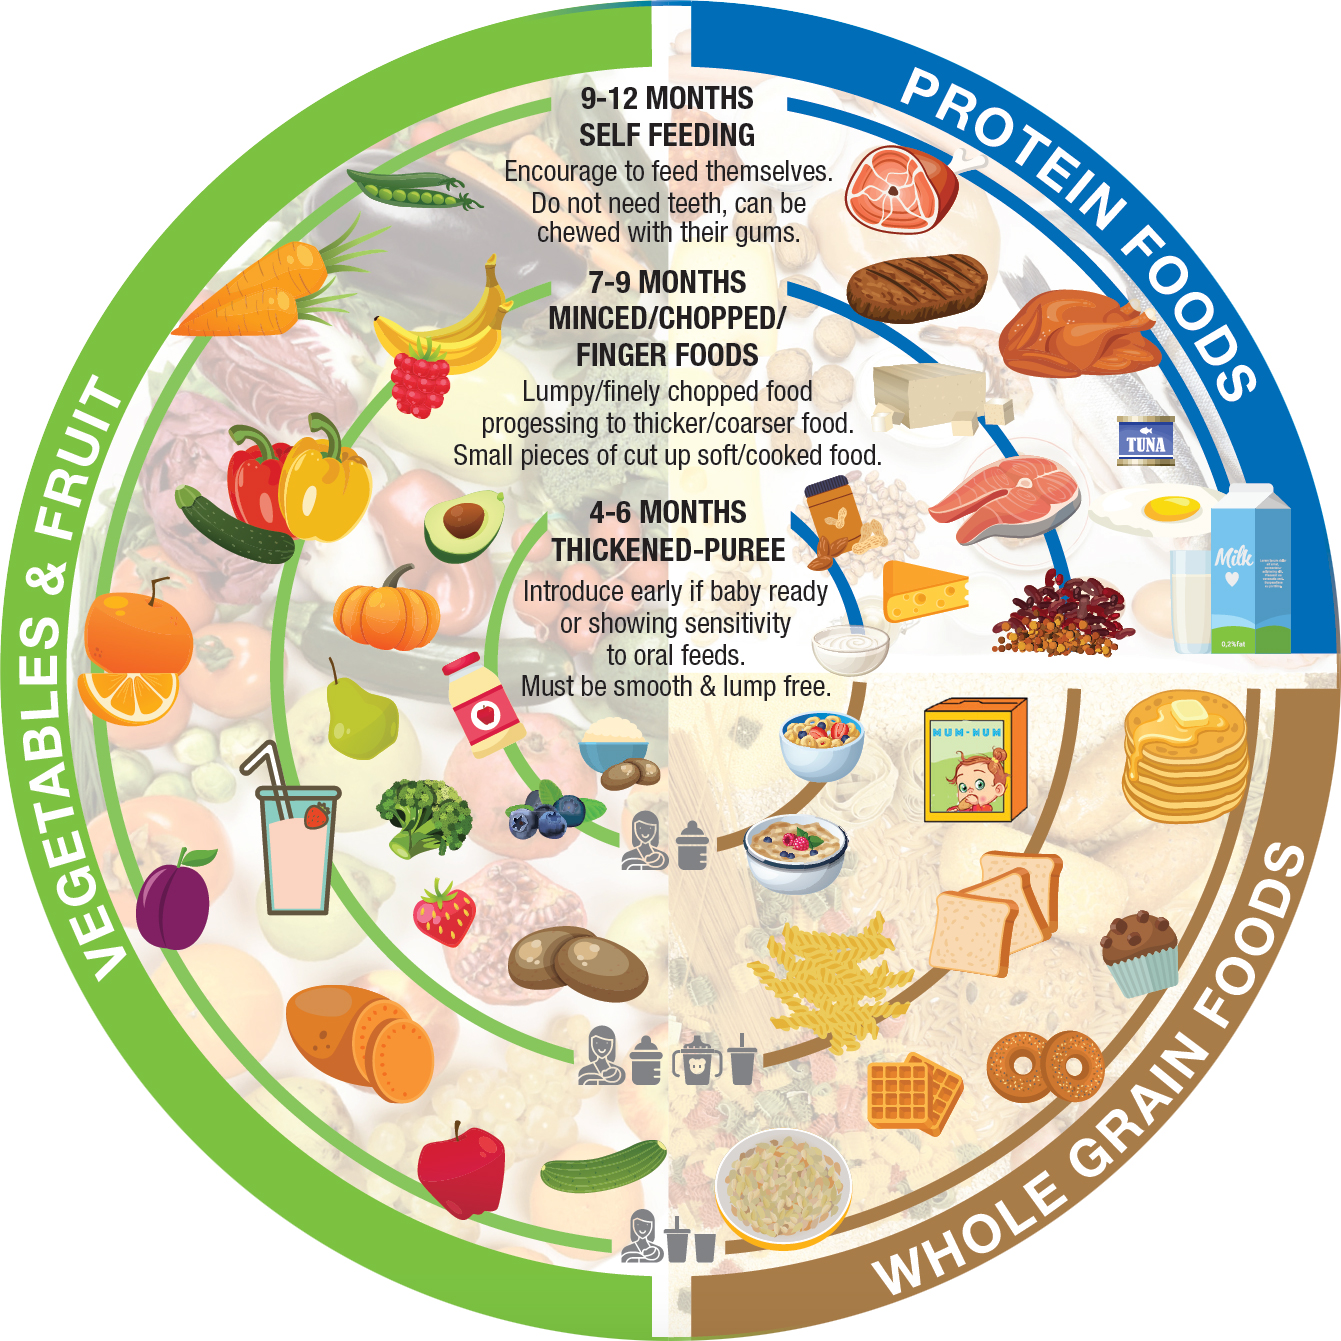 A circular diagram depicting the progression of food textures in baby's first year. Around 4-6 months: thickened-puree: Introduce early if baby ready or showing sensitivity to oral feeds. Most be smooth and lump free. Around 7-9 months: minced/chopped/finger foods. Lumpy/finely chopped food progressing to thicker/coarser food. Small pieces of cut up soft/cooked food. Around 9-12 months: self-feeding. Encourage to feed themselves. Do not need teeth, can be chewed with their gums.